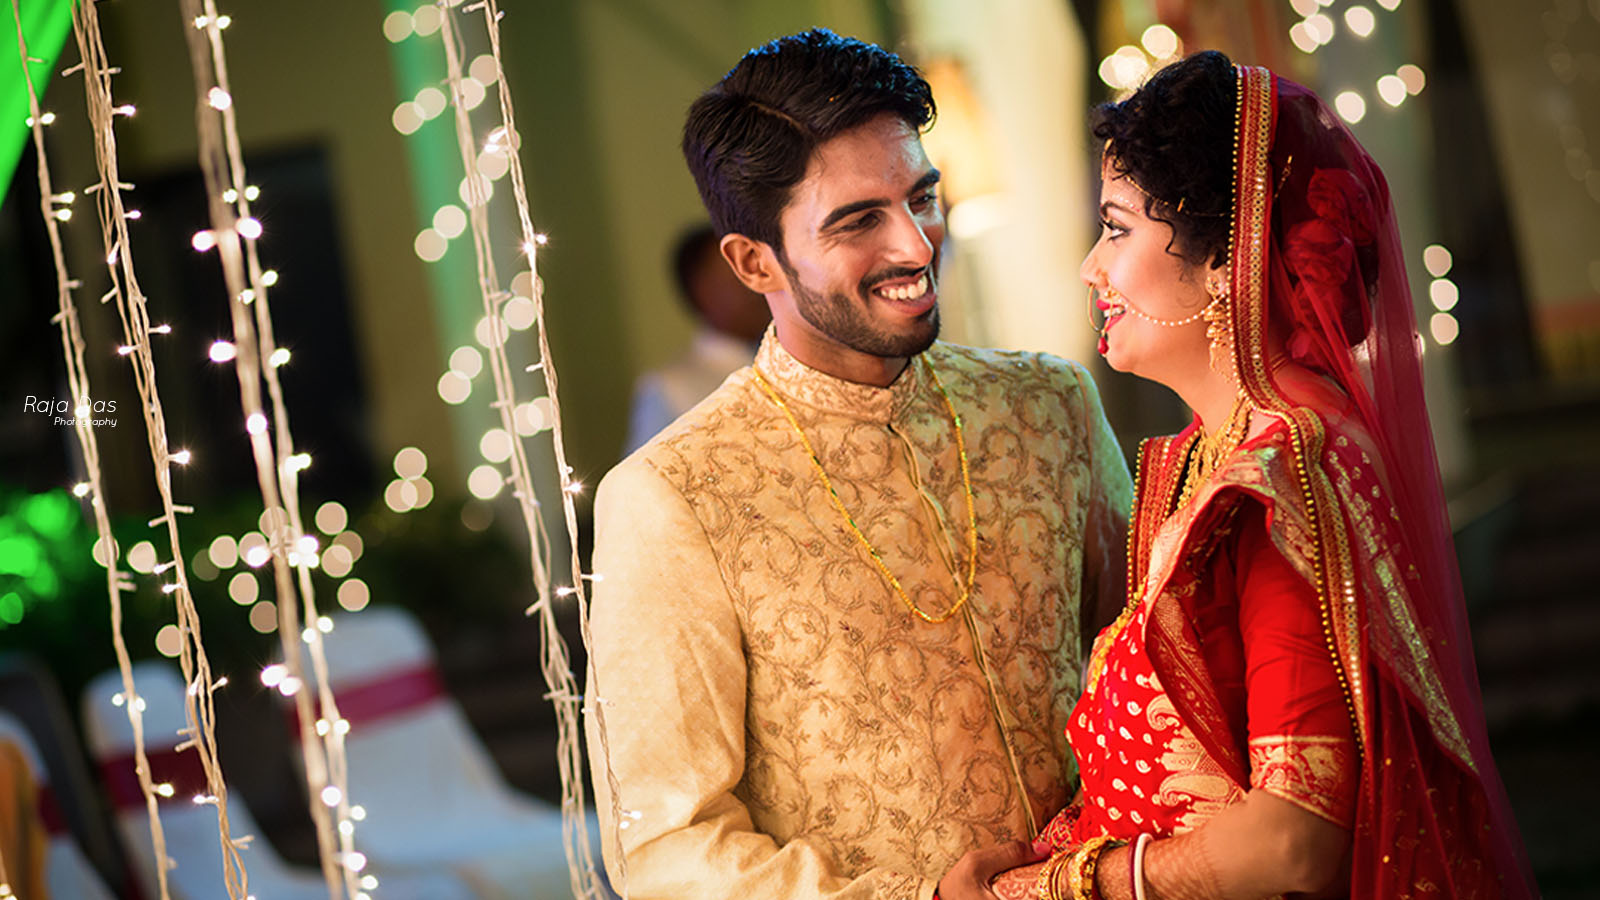 candid wedding photography in kolkata